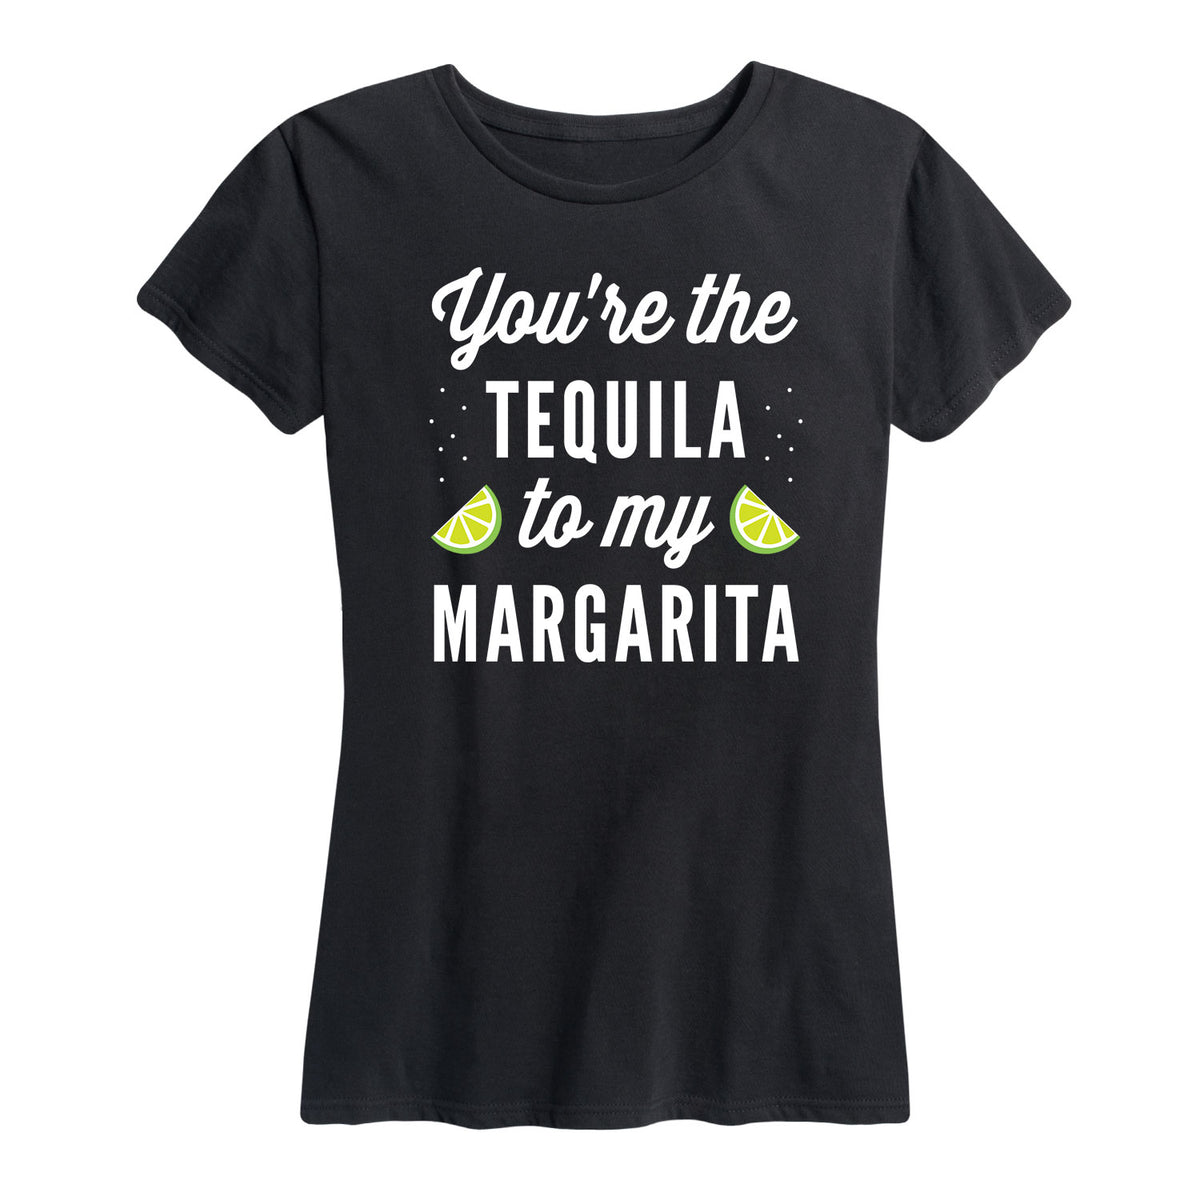 You're The Tequila To My Margarita - Women's Short Sleeve T-Shirt